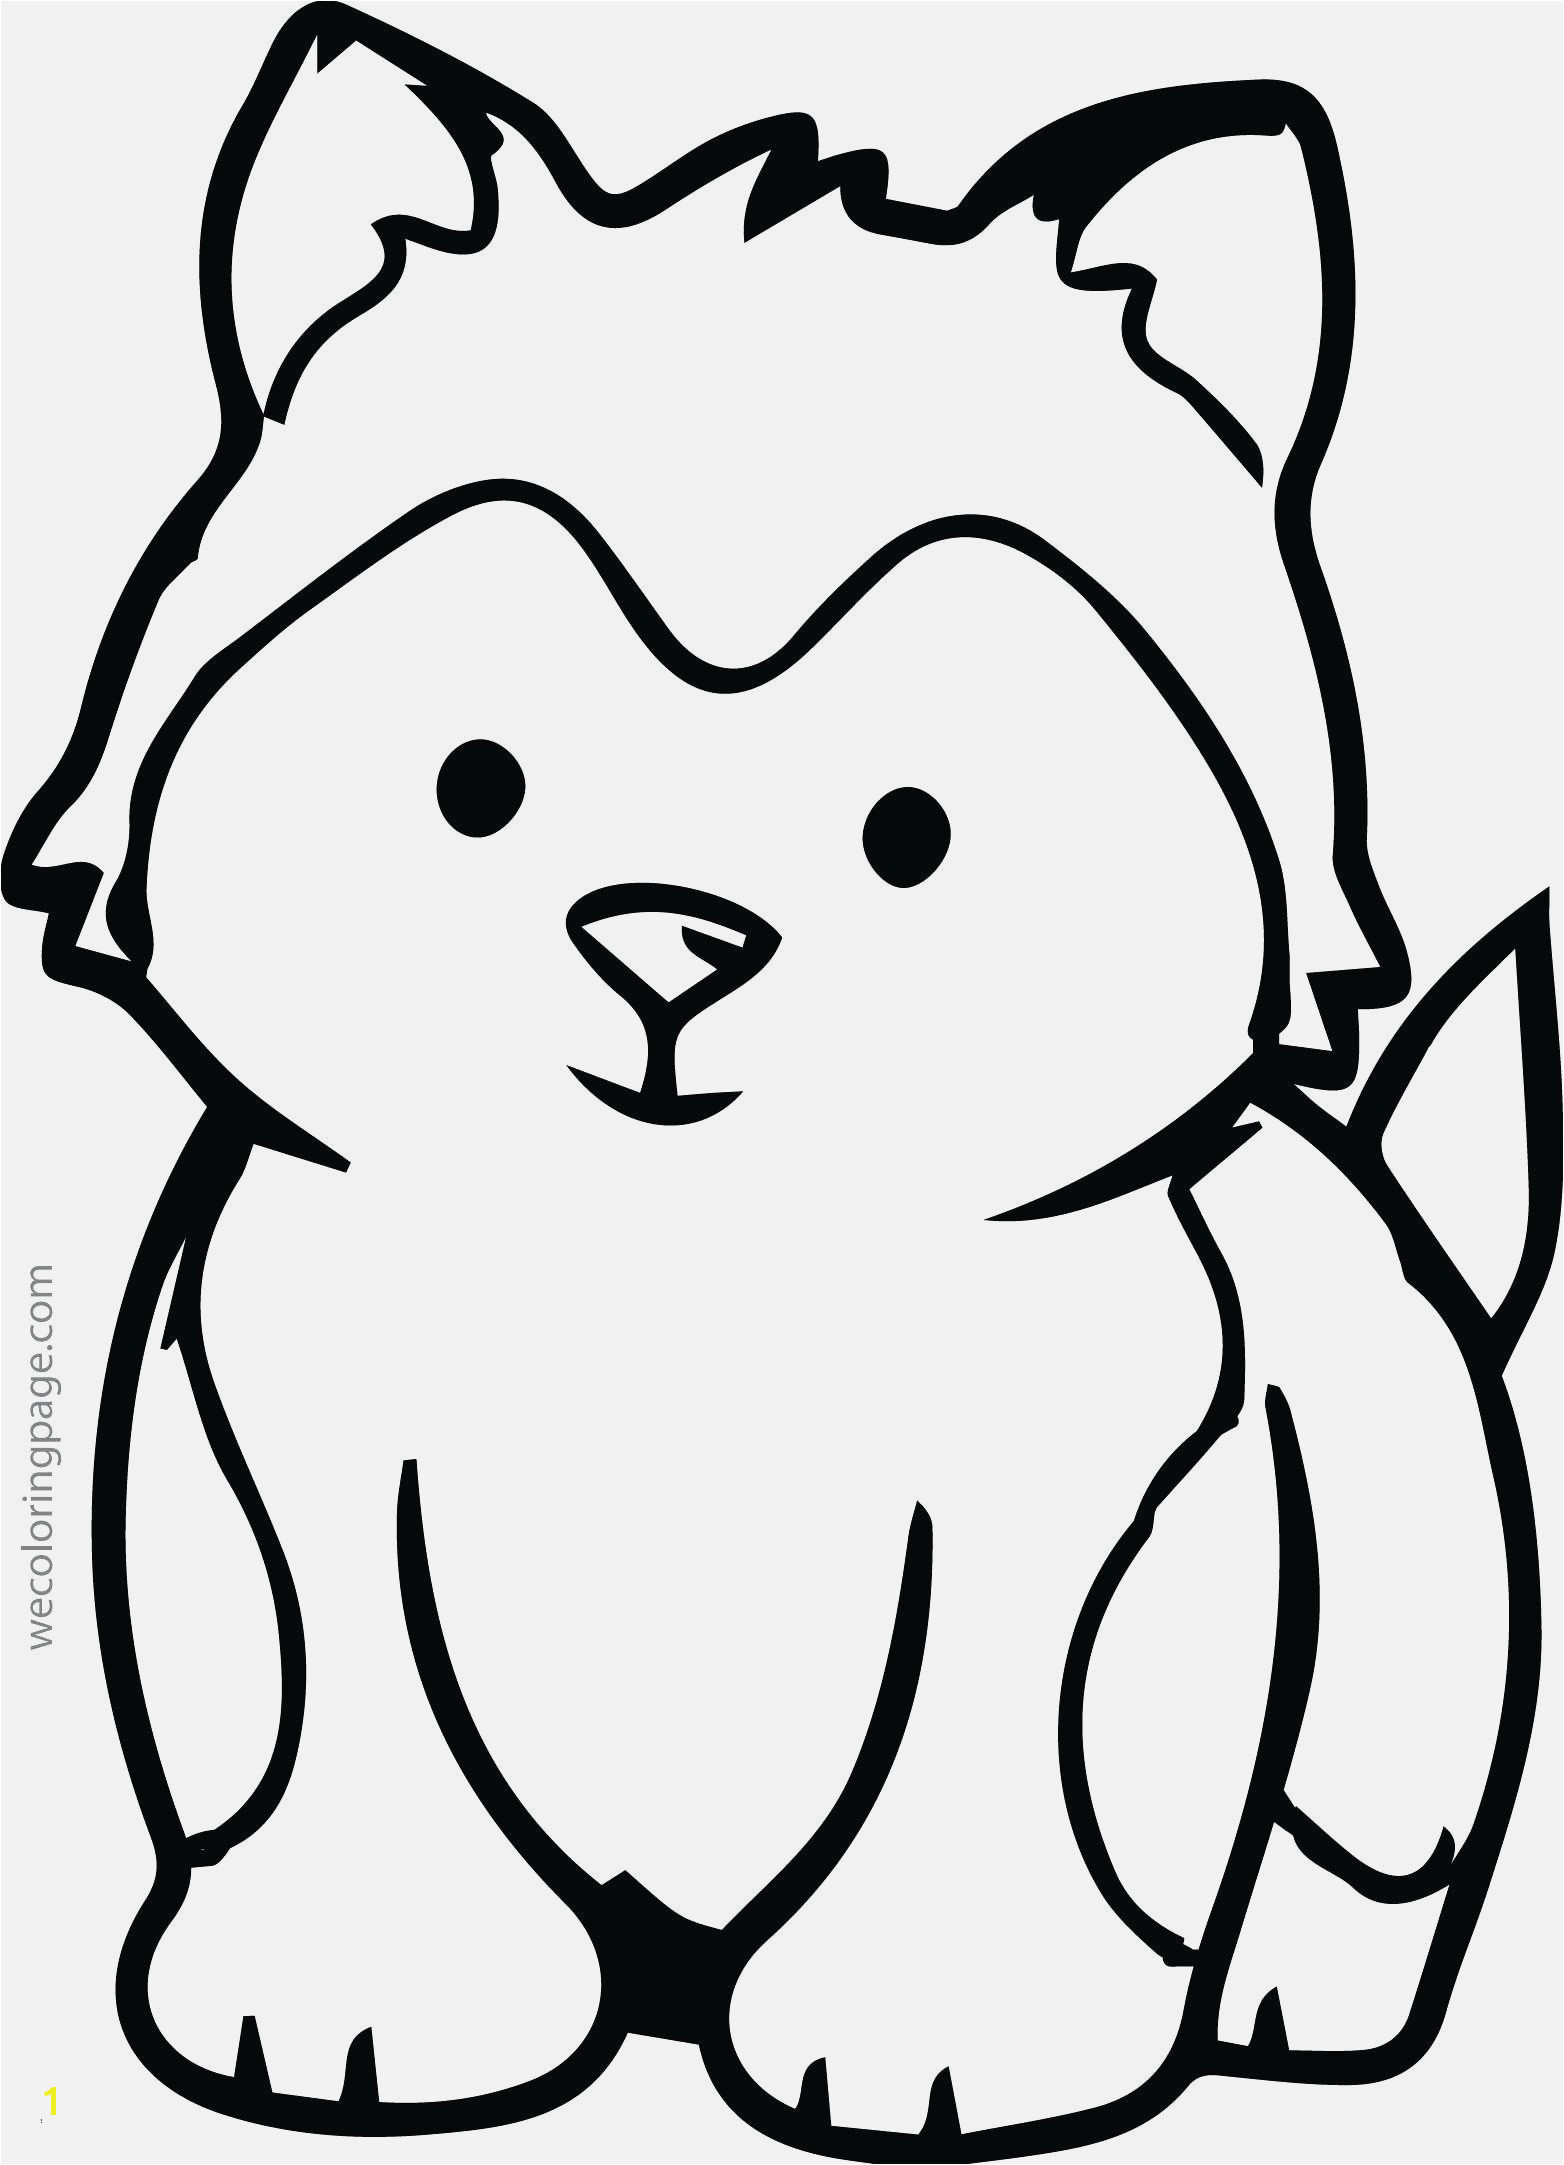 Free Printable Animal Coloring Pages for Adults Coloring Pages Hard Easy and Fun Adult Coloring Book Pages Fresh